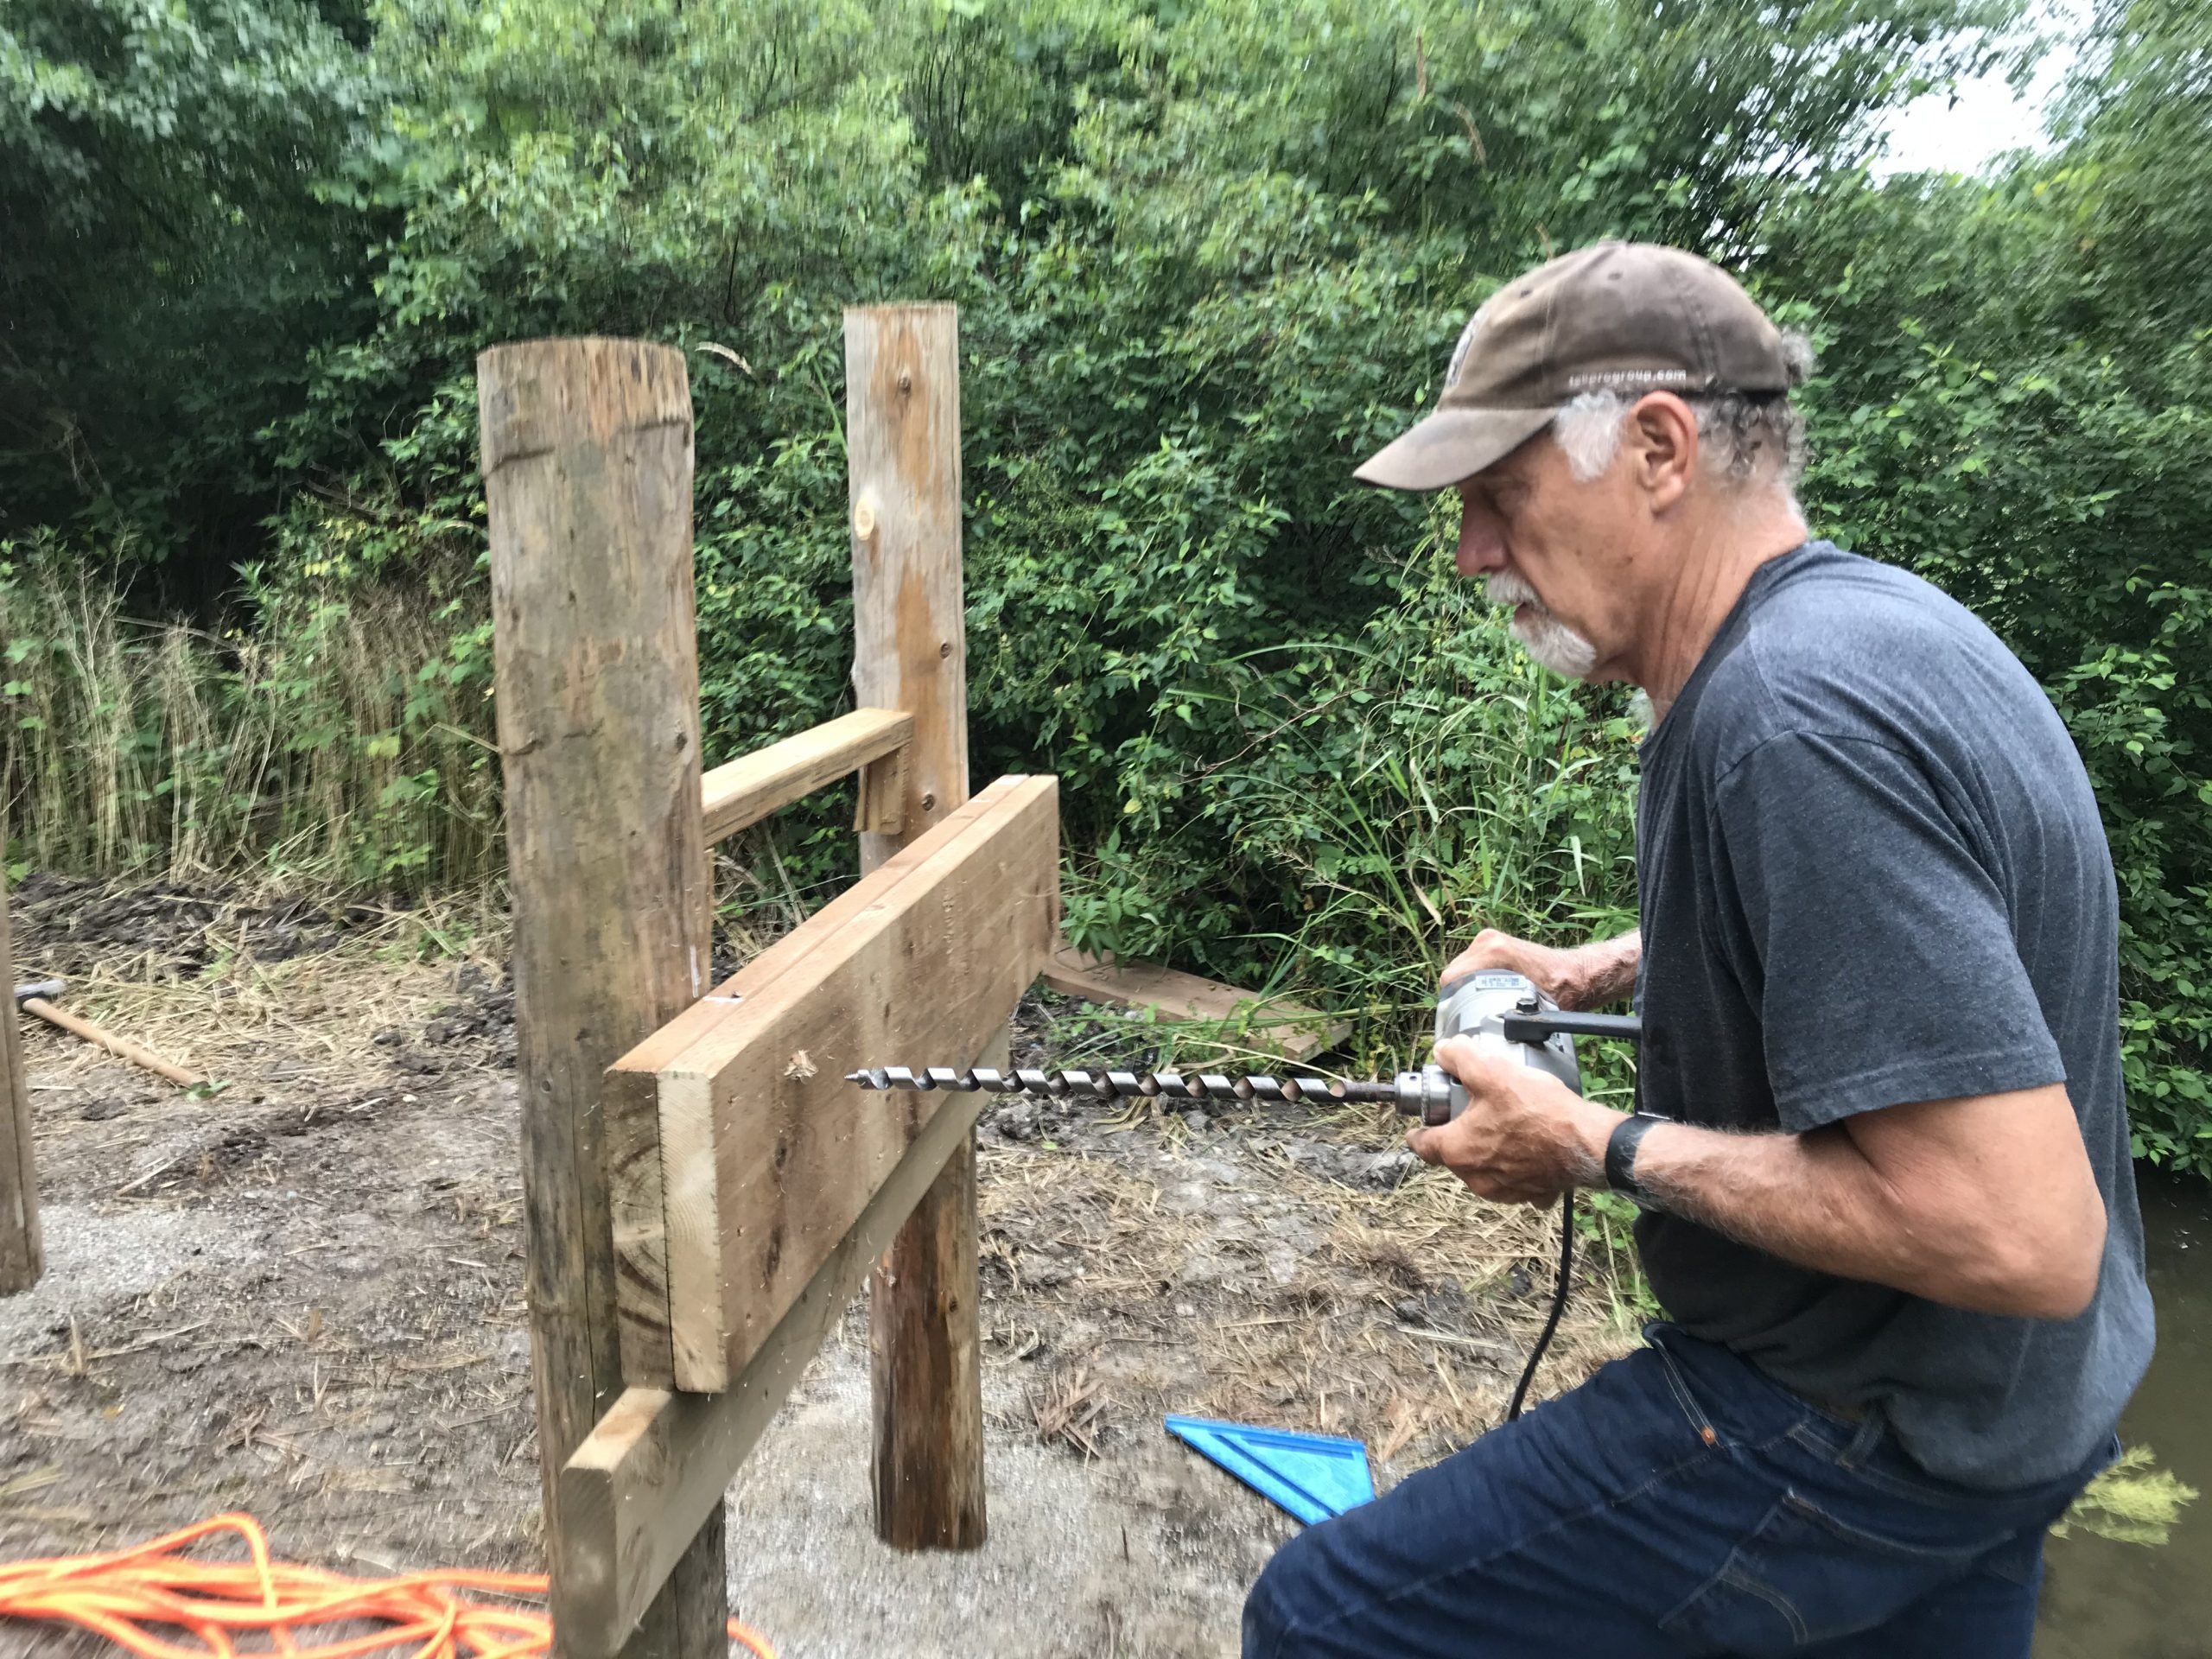 Tues July 21 - Ted drills for cross members